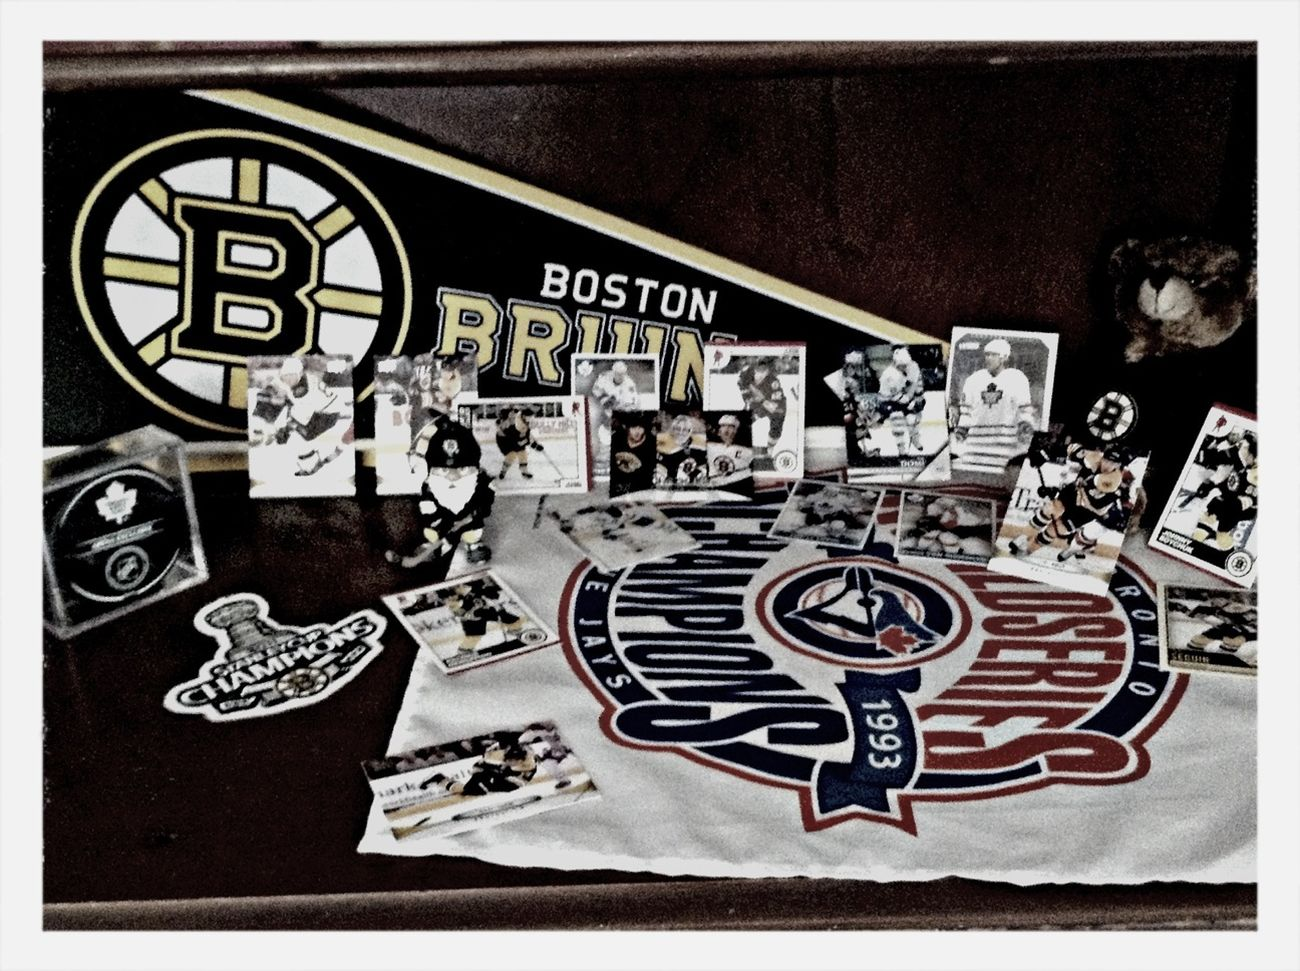 Haha i totally just put this together 5 min ago! Hockey Baseball Bruins Maple Leafs